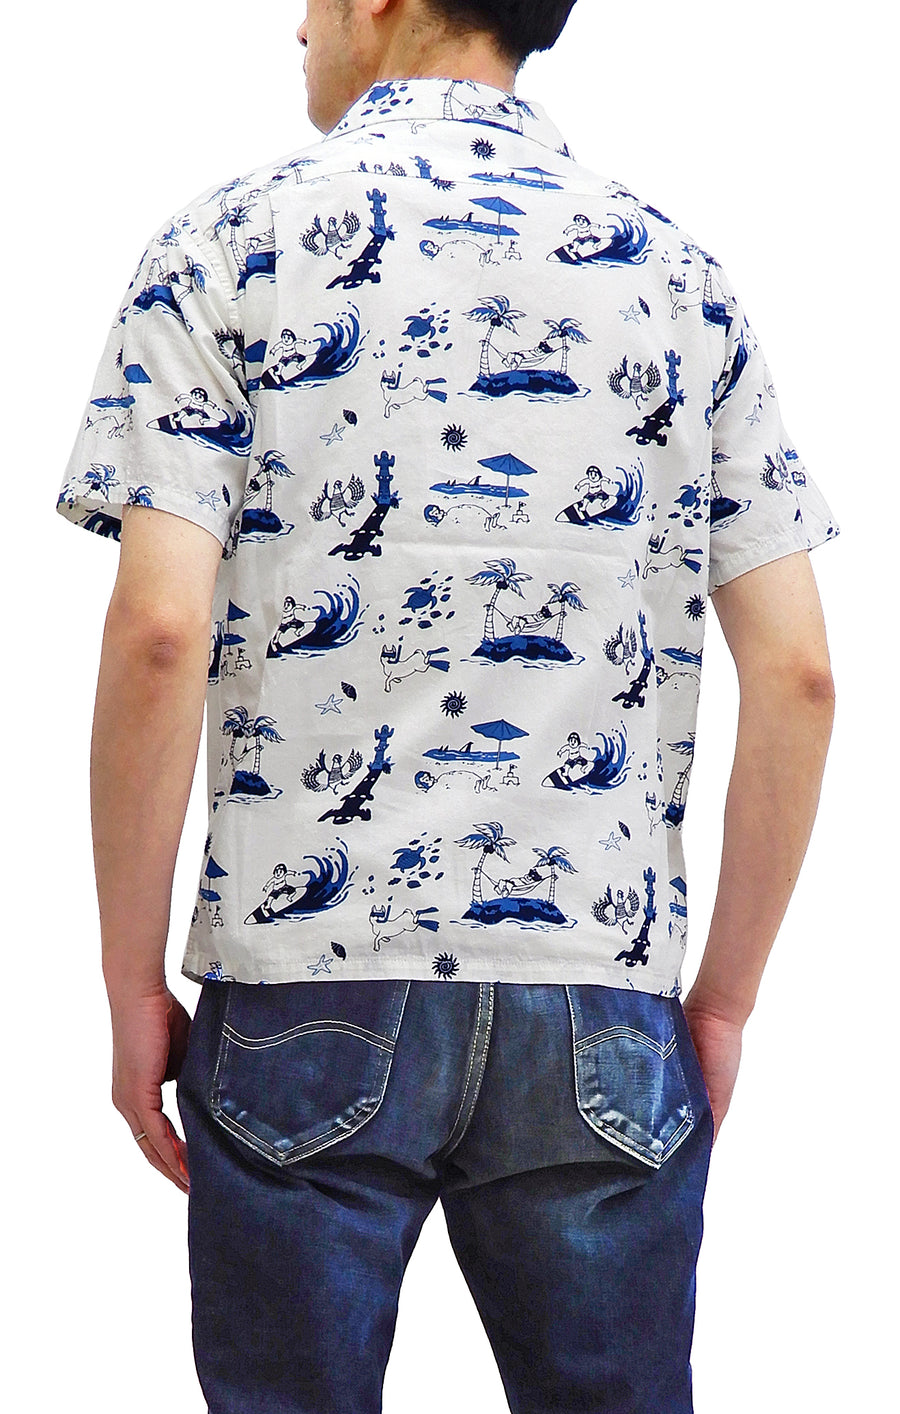 Momotaro Jeans Men's Hawaiian Shirt Short Sleeve Button Up Aloha Shirt All Over Print Button Up Shirt 06-091 White